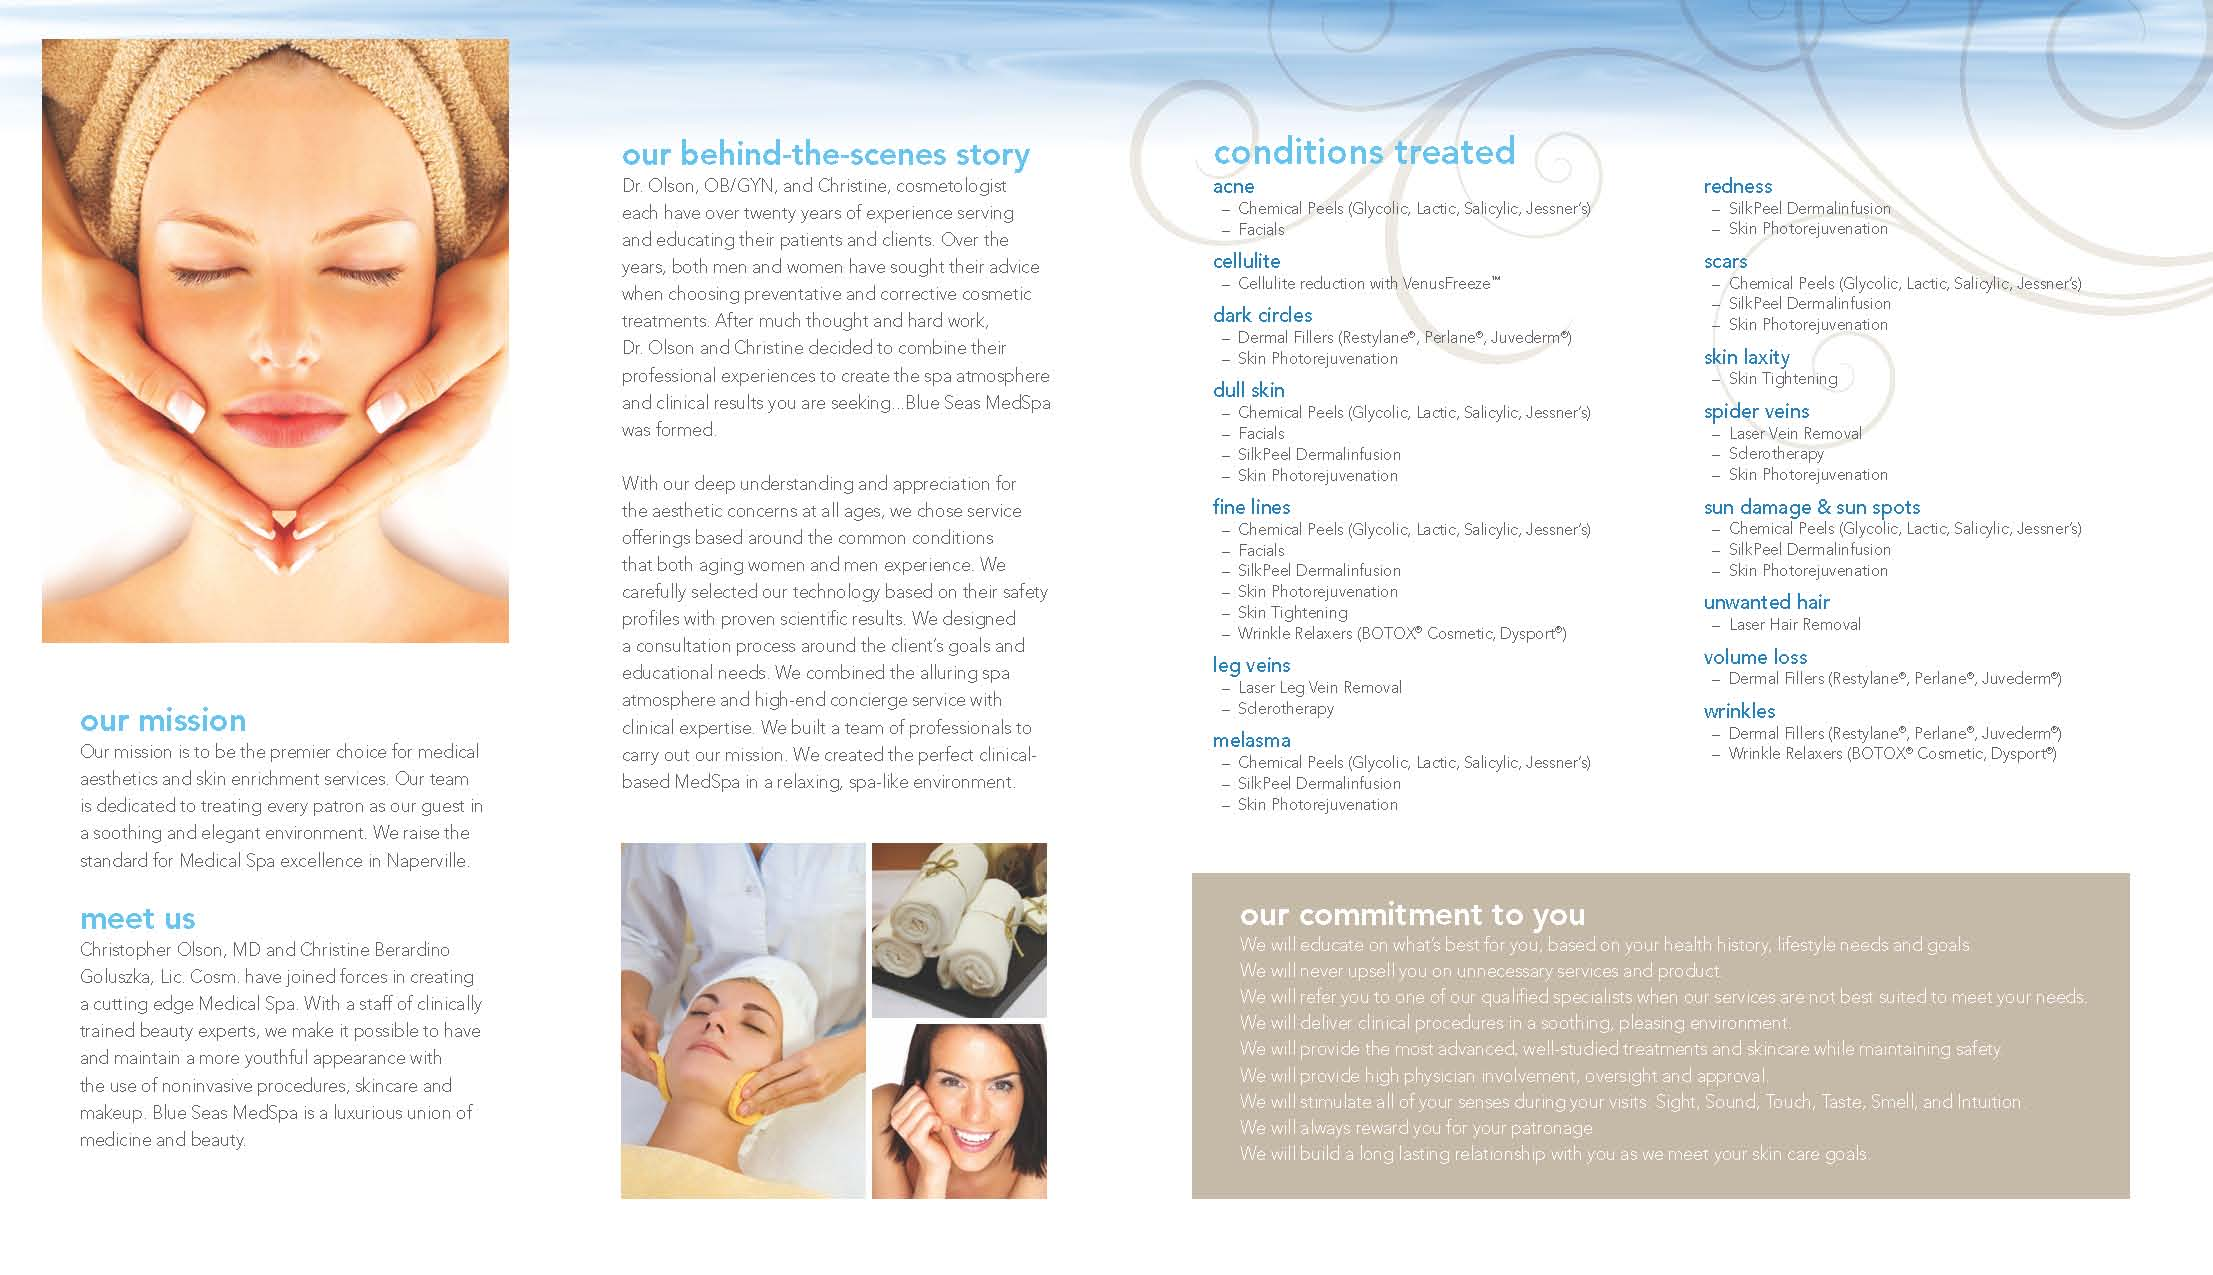 Blue Seas Med Spa brochure page 2